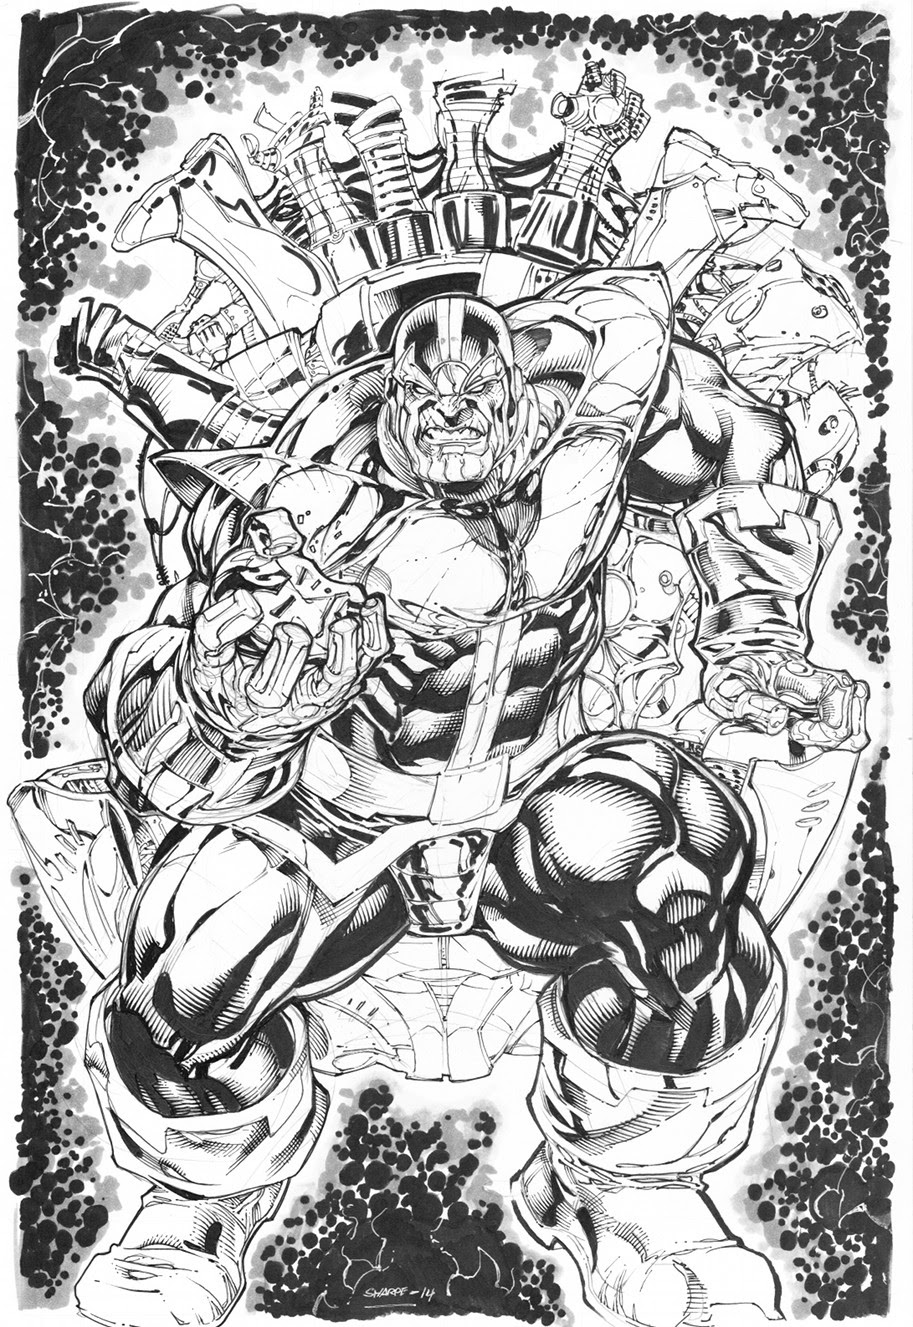 Thanos commission by Kevin-Sharpe on DeviantArt